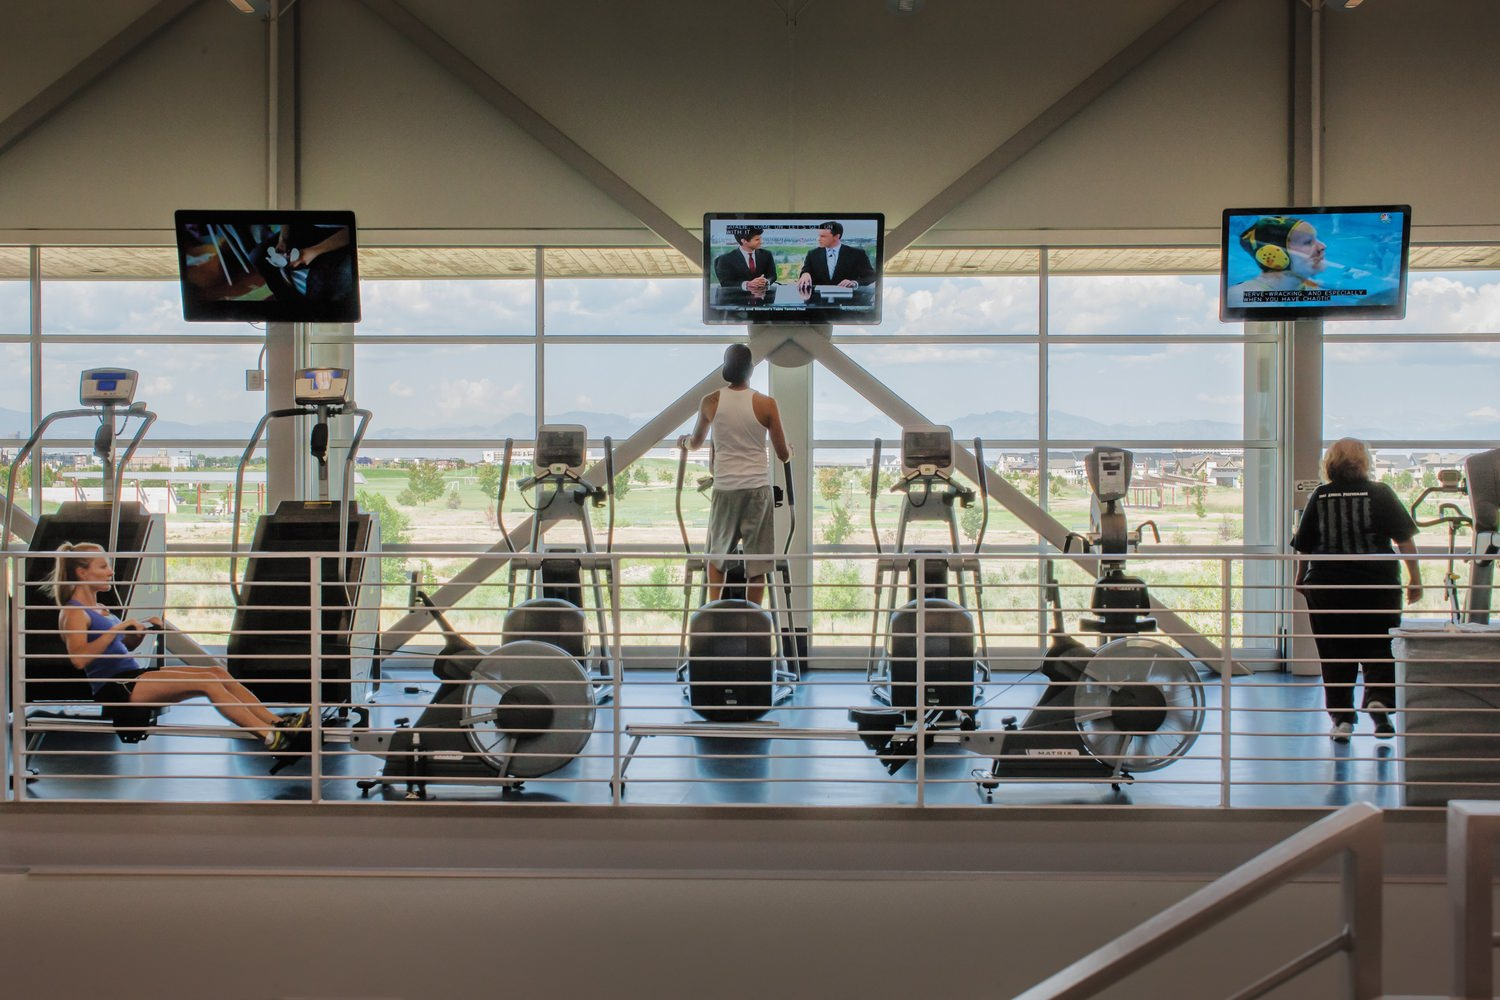 A group of people that are working out in a gym on elliptical machines and rowing machines.